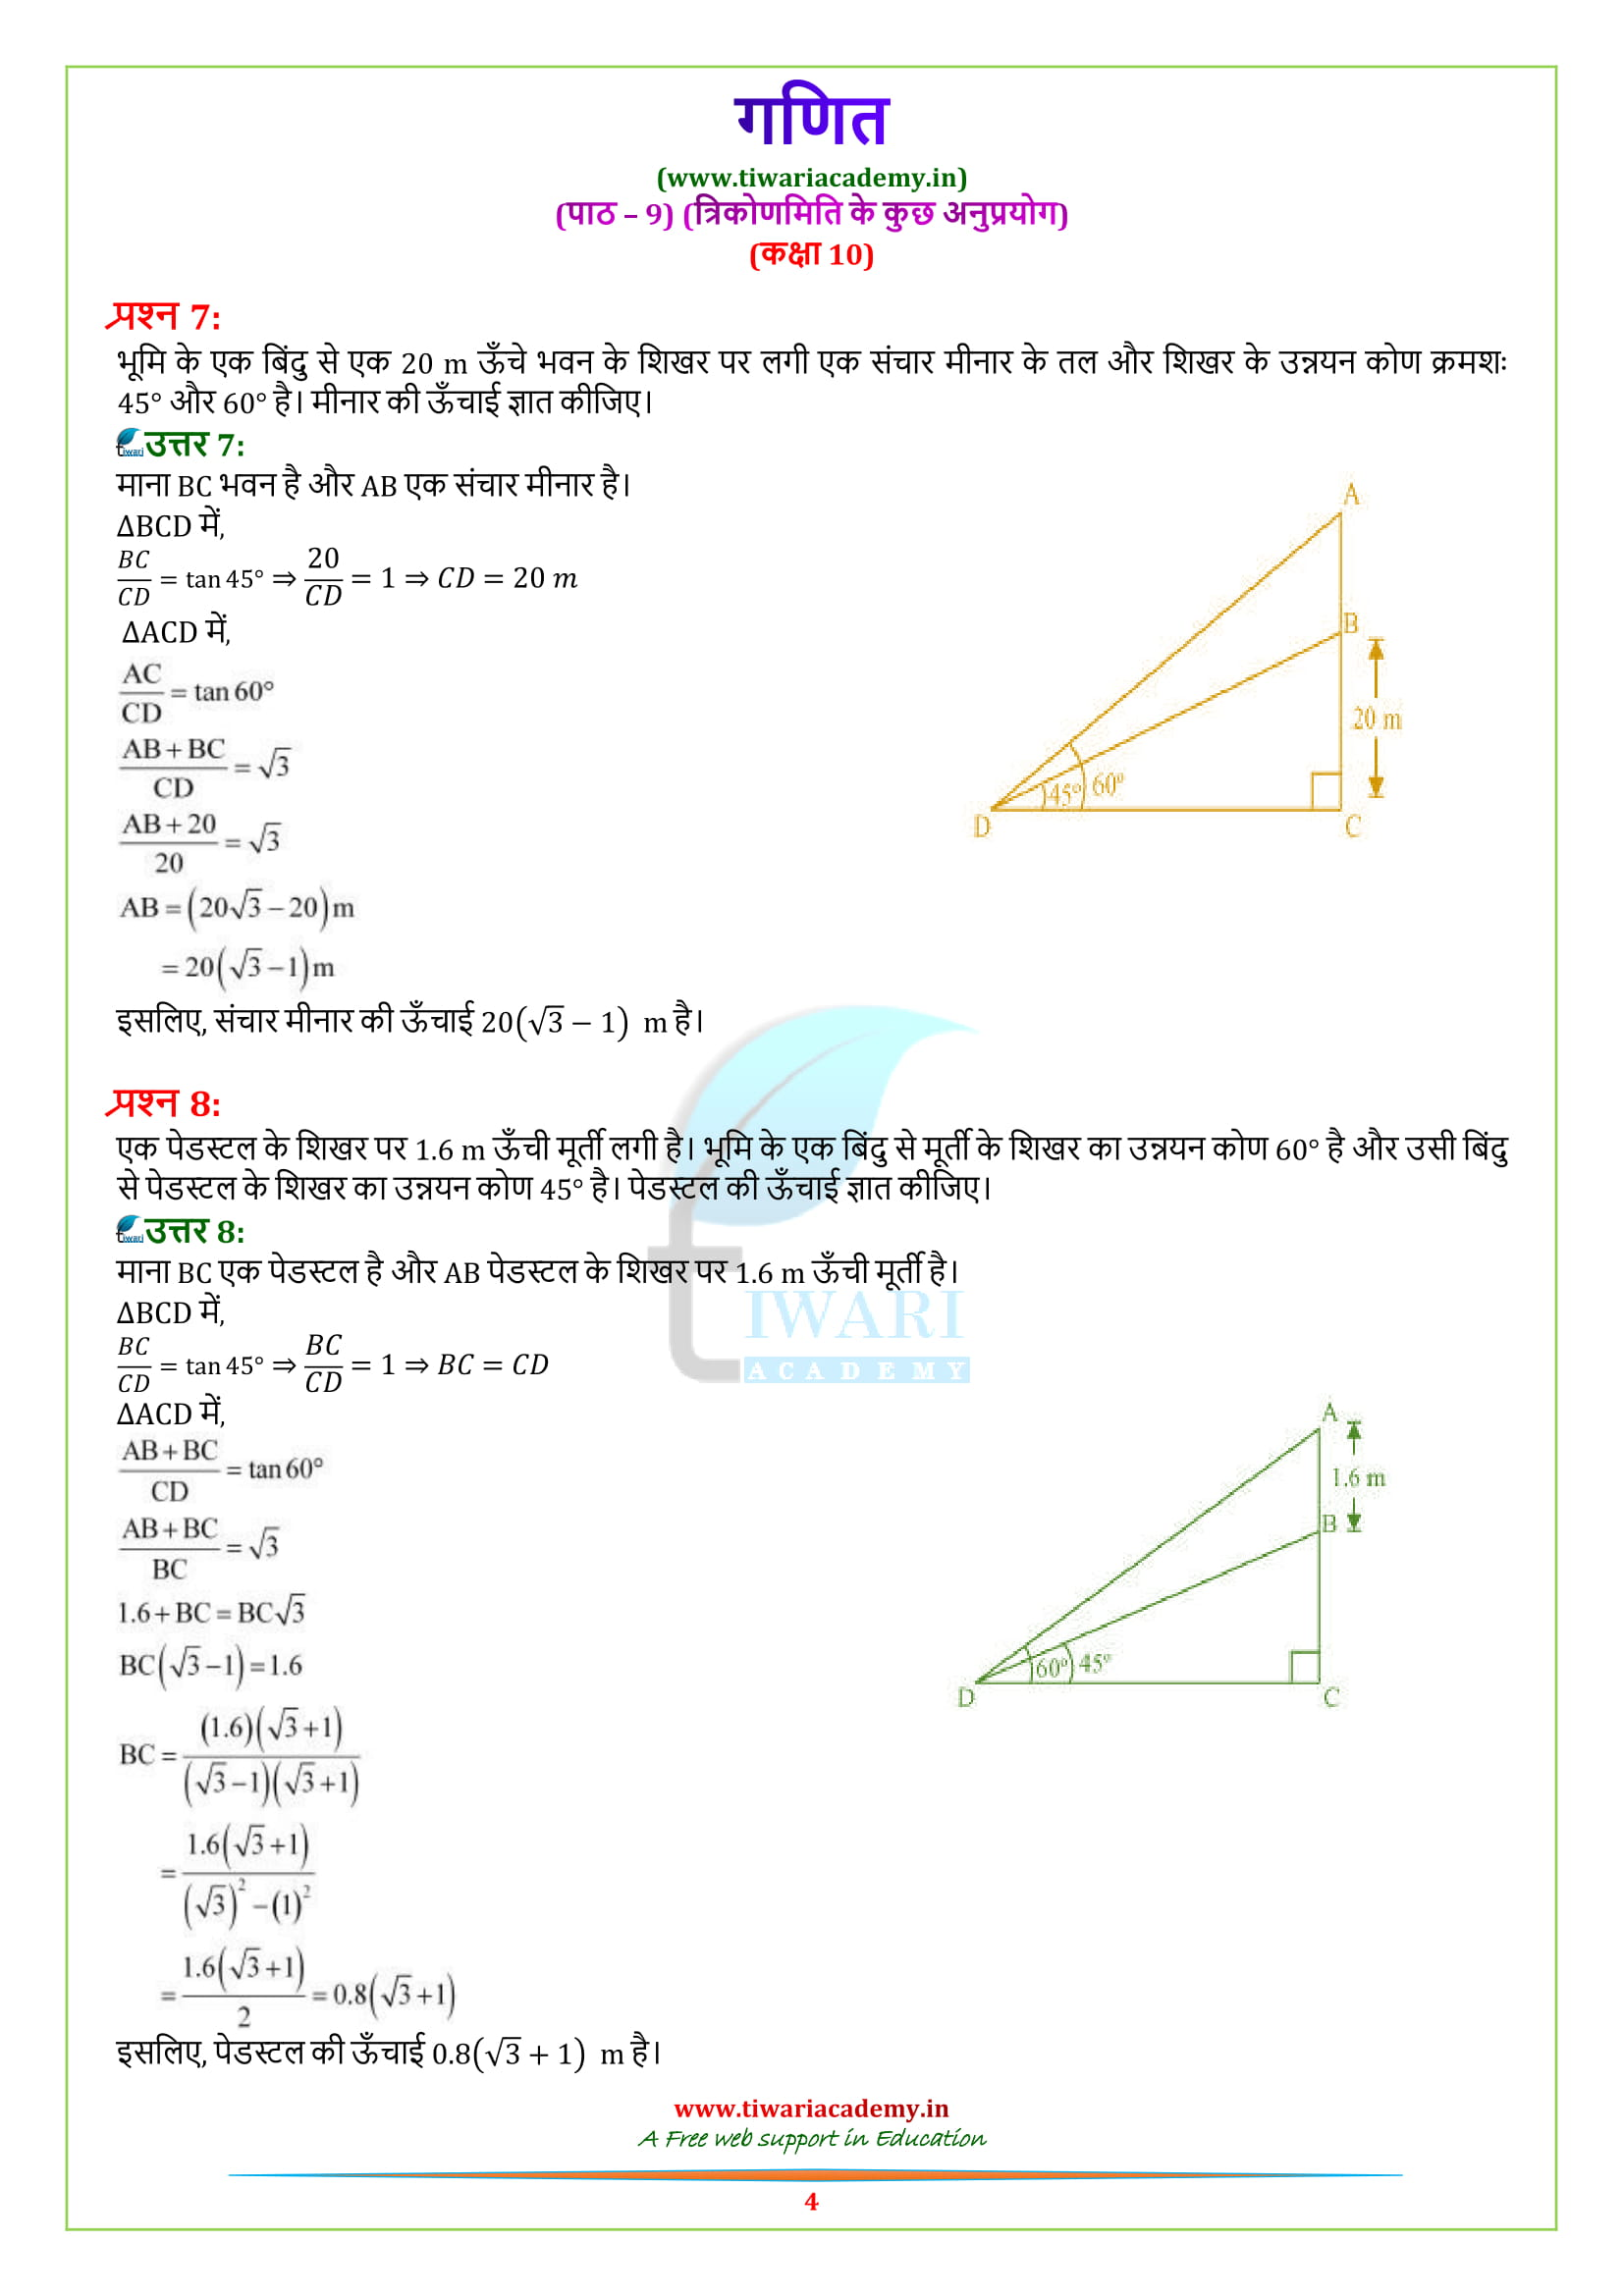 Class 10 Maths Exercise 9.1 question 8 solutions